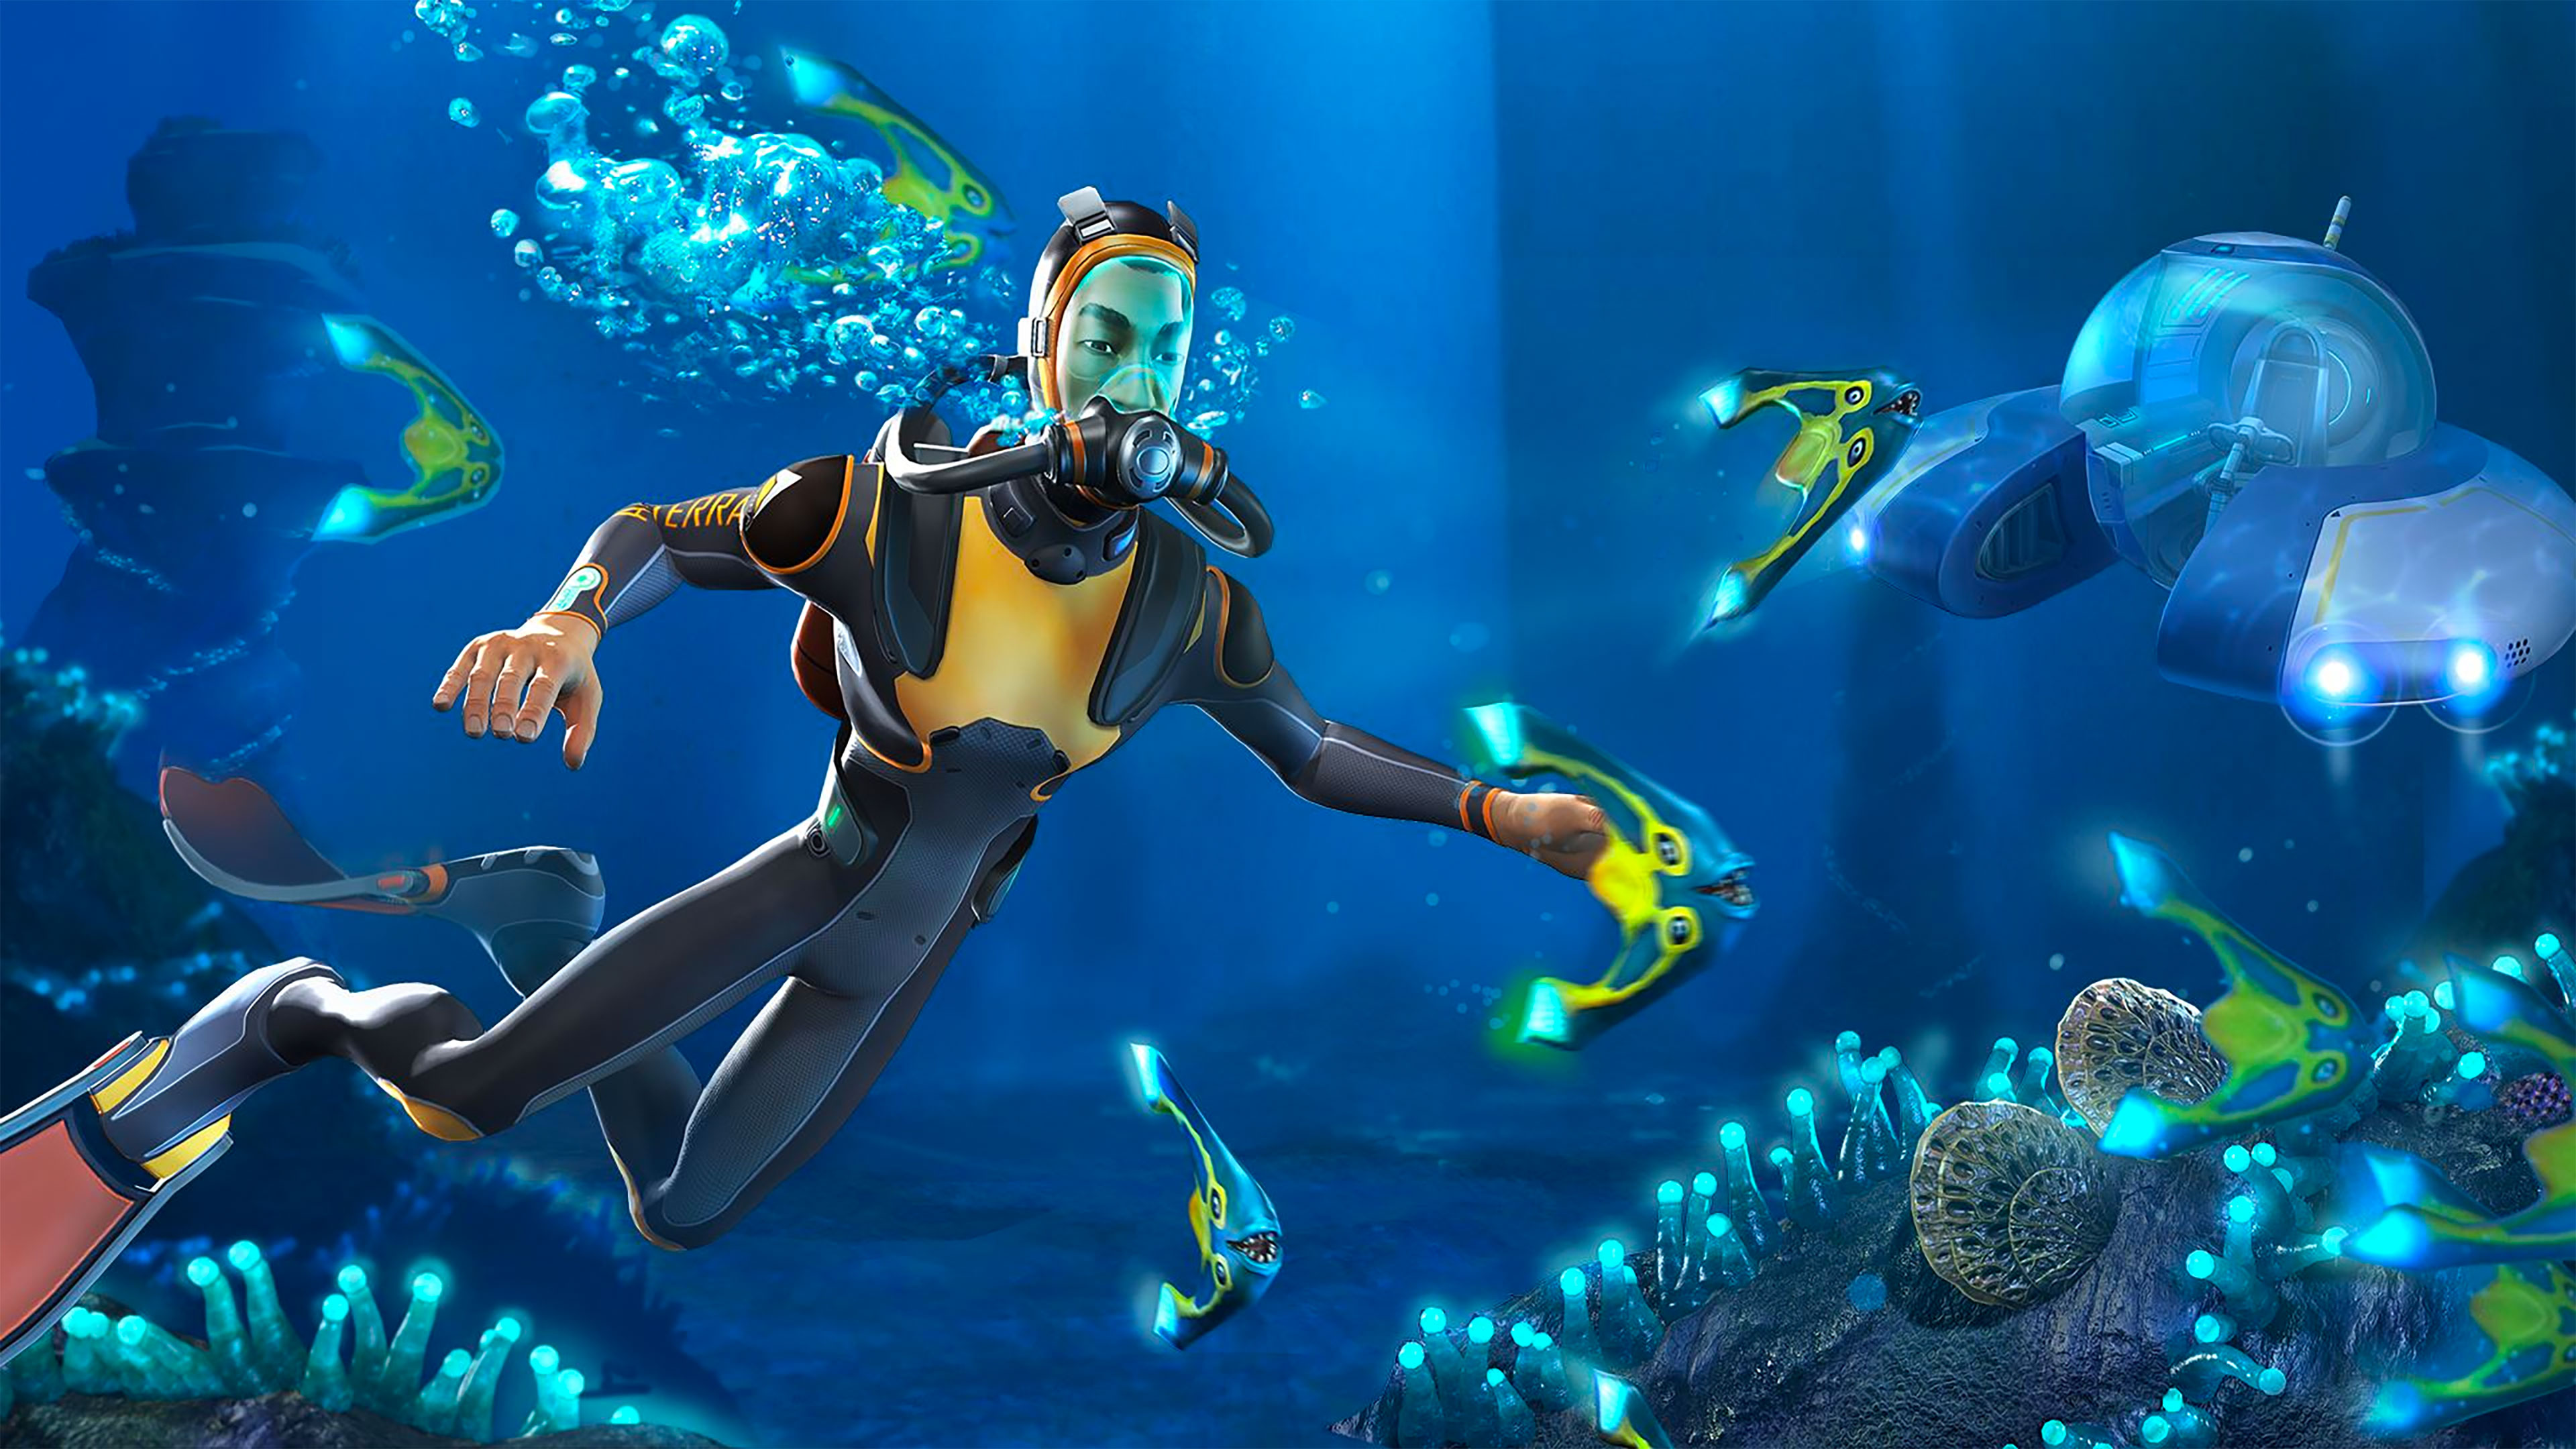 Subnautica Wallpapers In Ultra HD